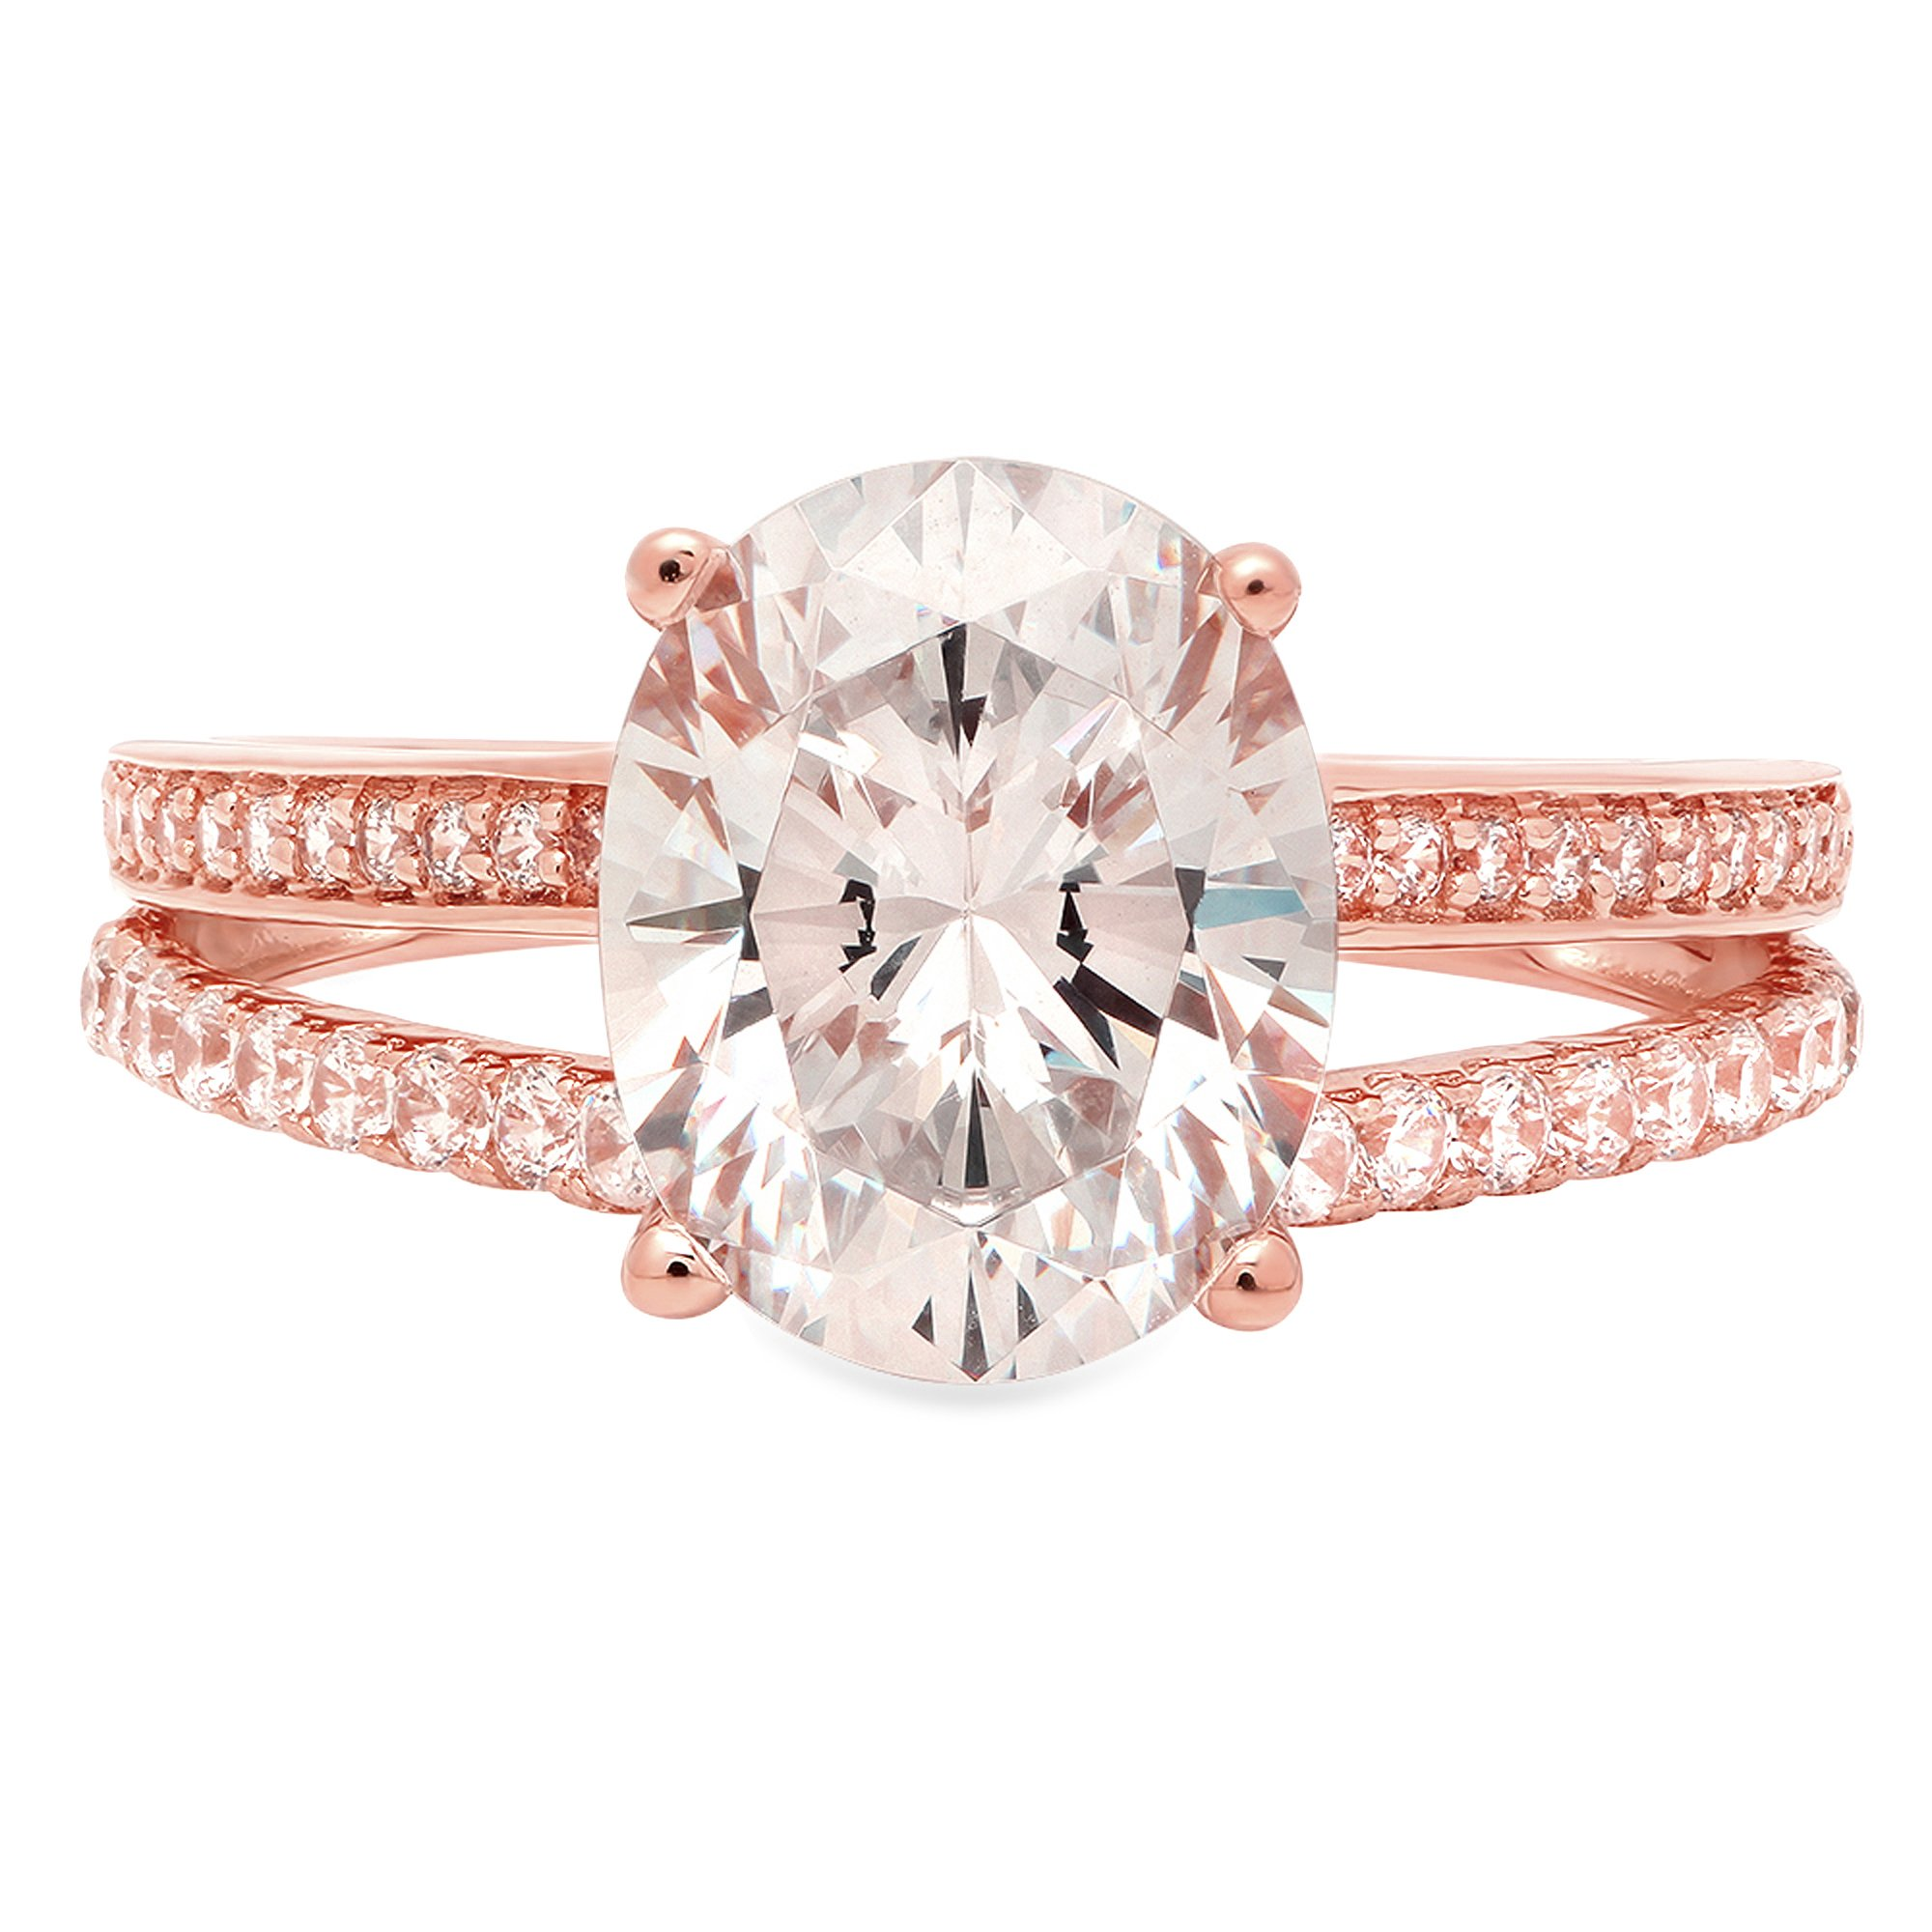 14k Solid Rose Gold 1.9ct Brilliant Oval Cut Engagement Wedding Promise Anniversary Ring Bridal Jewelry for Women, 8